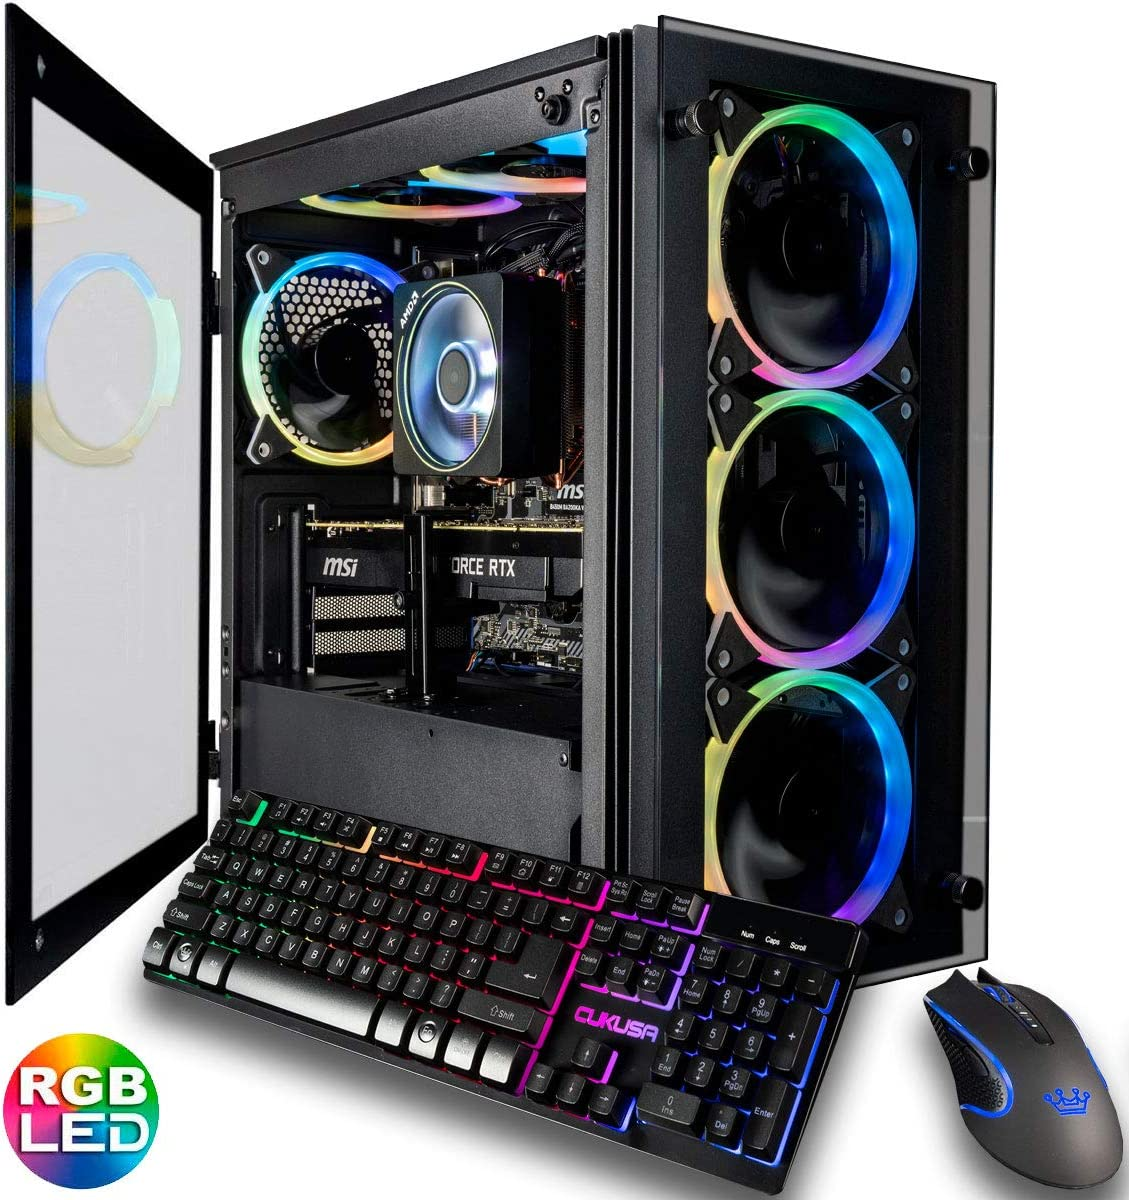 CUK Stratos Micro Gaming Desktop (AMD Ryzen 9 3900X, 32GB DDR4 3200 RAM, 1TB NVMe SSD + 2TB HDD, NVIDIA GeForce RTX 2080 Super 8GB, 700W Gold PSU, AC WiFi, Windows 10 Home) Best New Gamer PC Computer